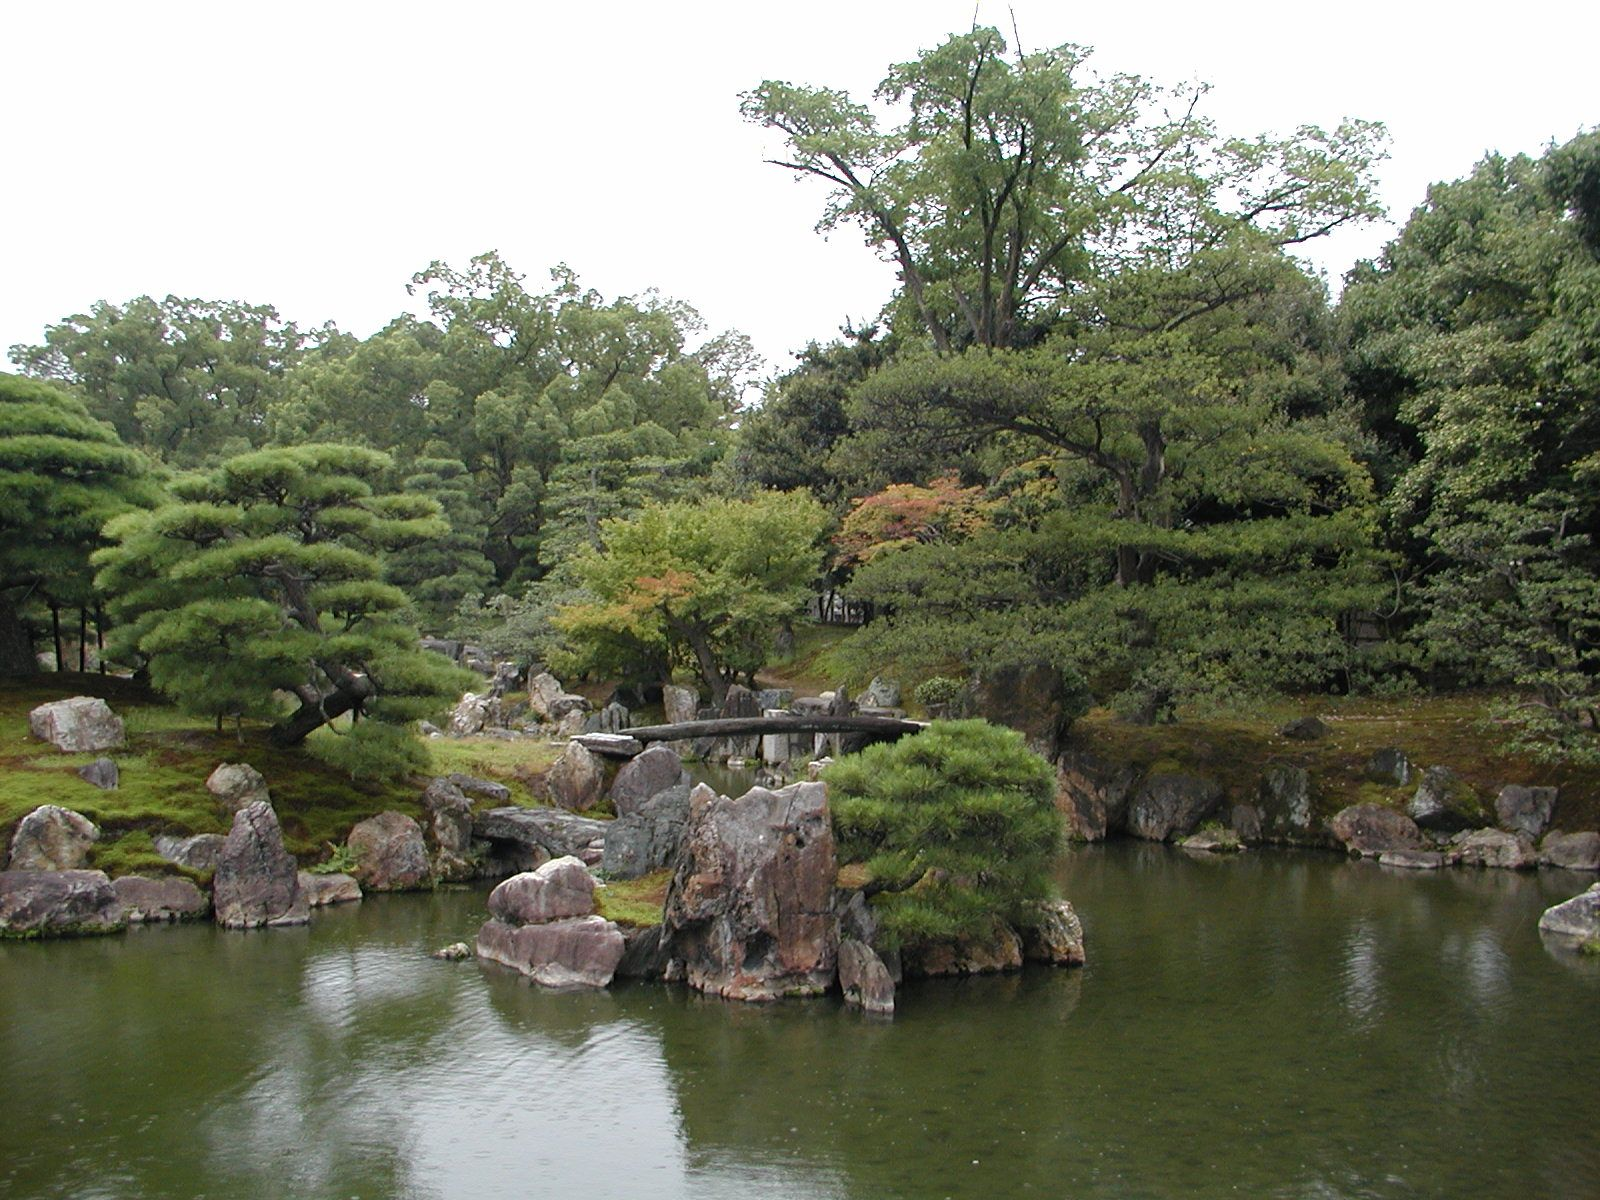 Nijo Castle: Ninomaru Garden, Seiryu-en Garden, and Honmaru Garden At present-day Nijo Castle there are three gardens Ninomaru Garden, Seiryu-en Garden, ...